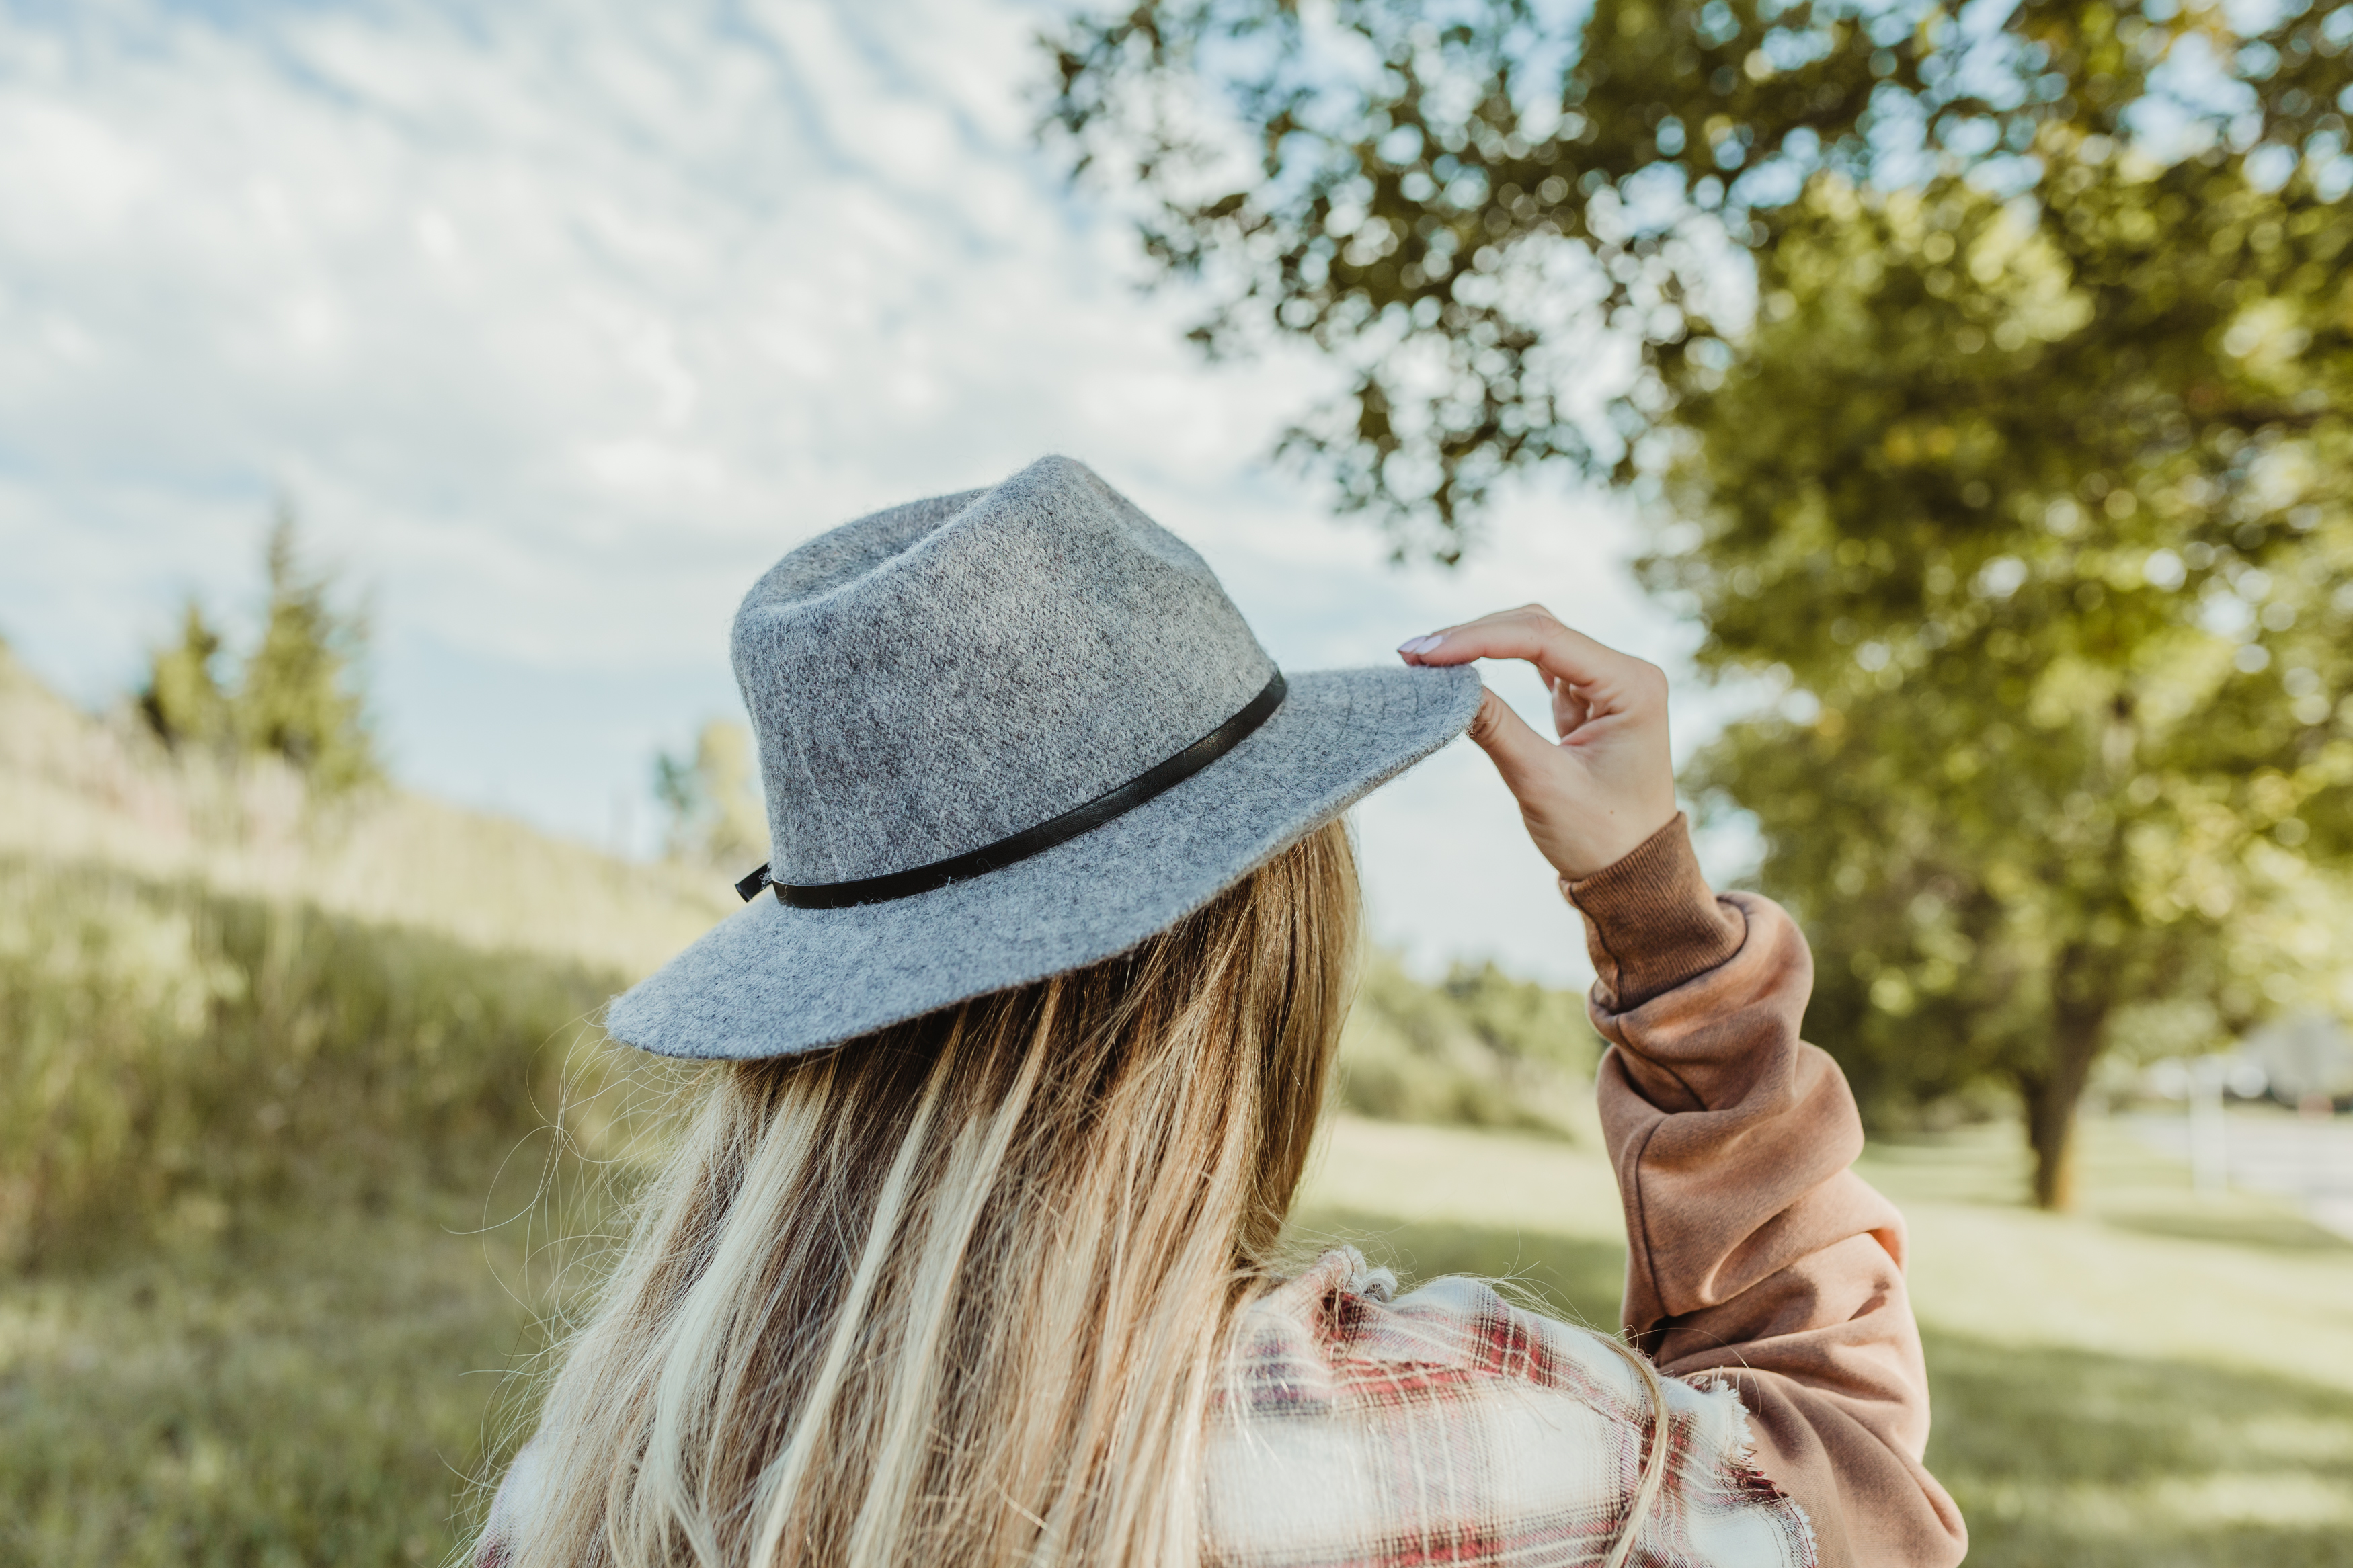 arguably one of the biggest accessory trends courtesy of instagram, adding a hat has a way of pulling every outfit together.